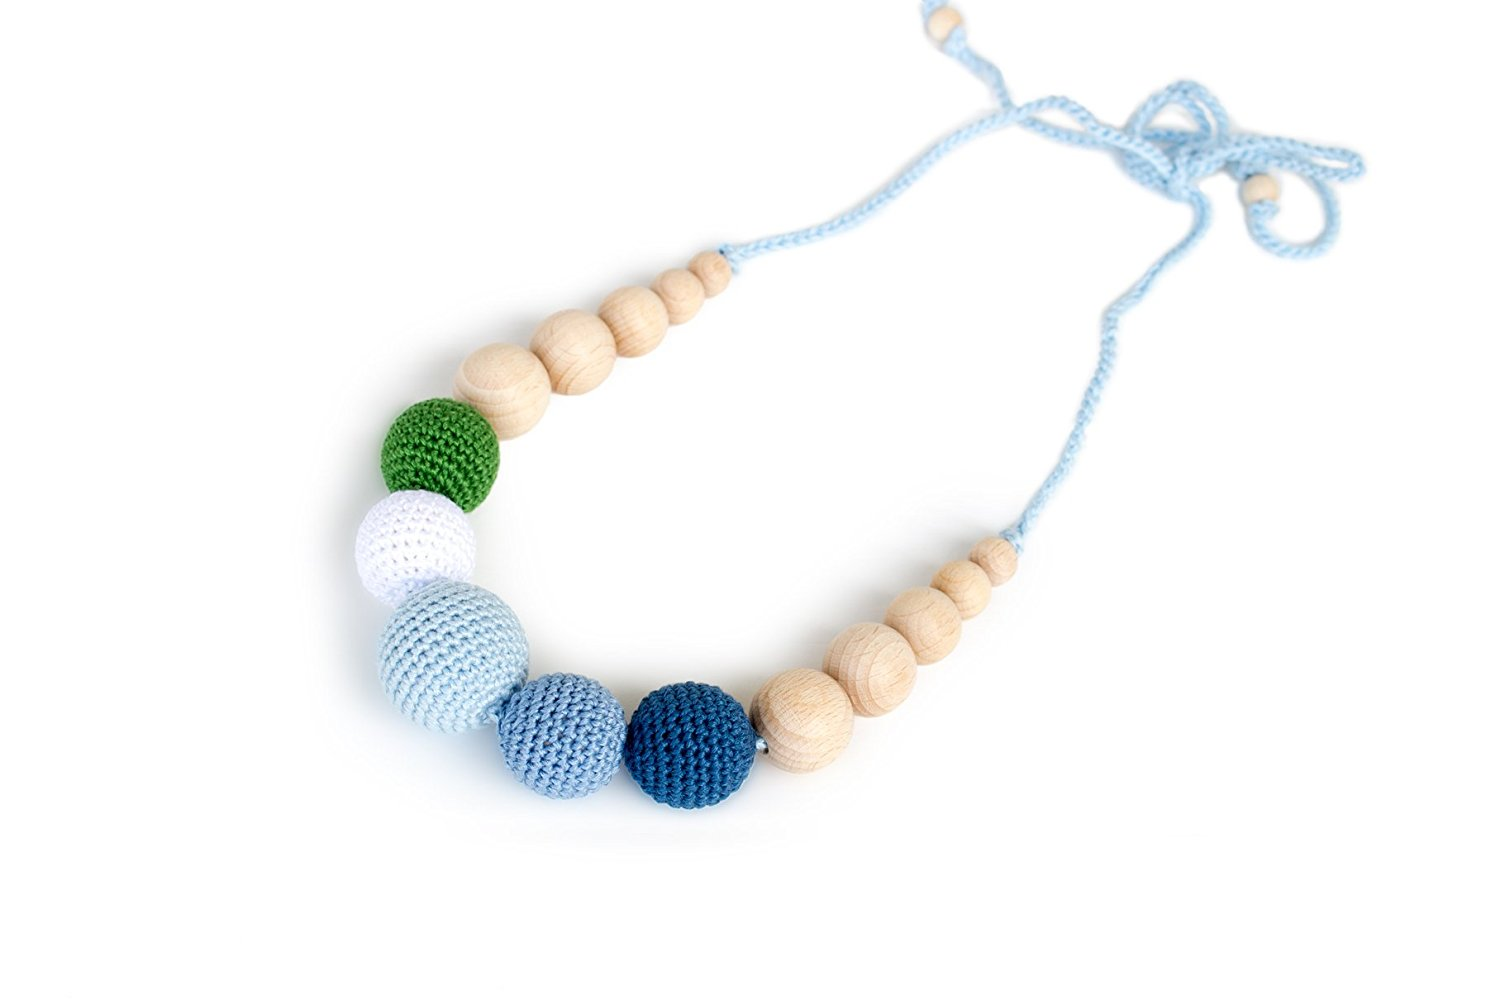 Raining In The Forest Wood Teething Necklace For Tfeeding Mom To Wear Sensory Chewable